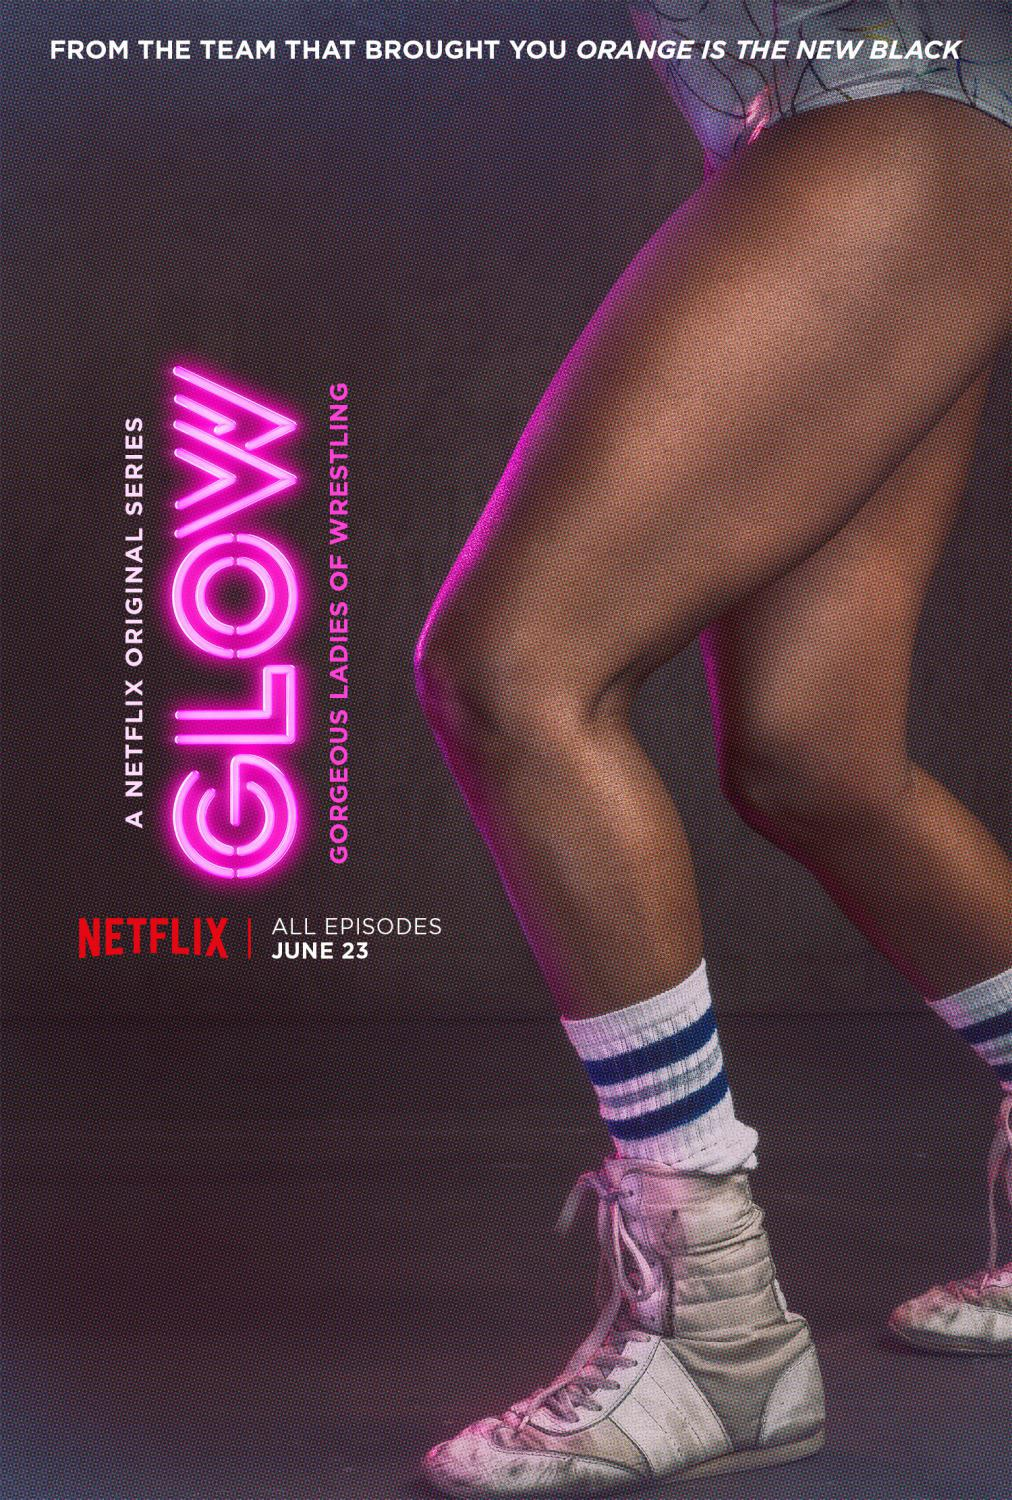 Series Netflix - GLOW - Gorgeous Ladies of Wrestling - legs poster